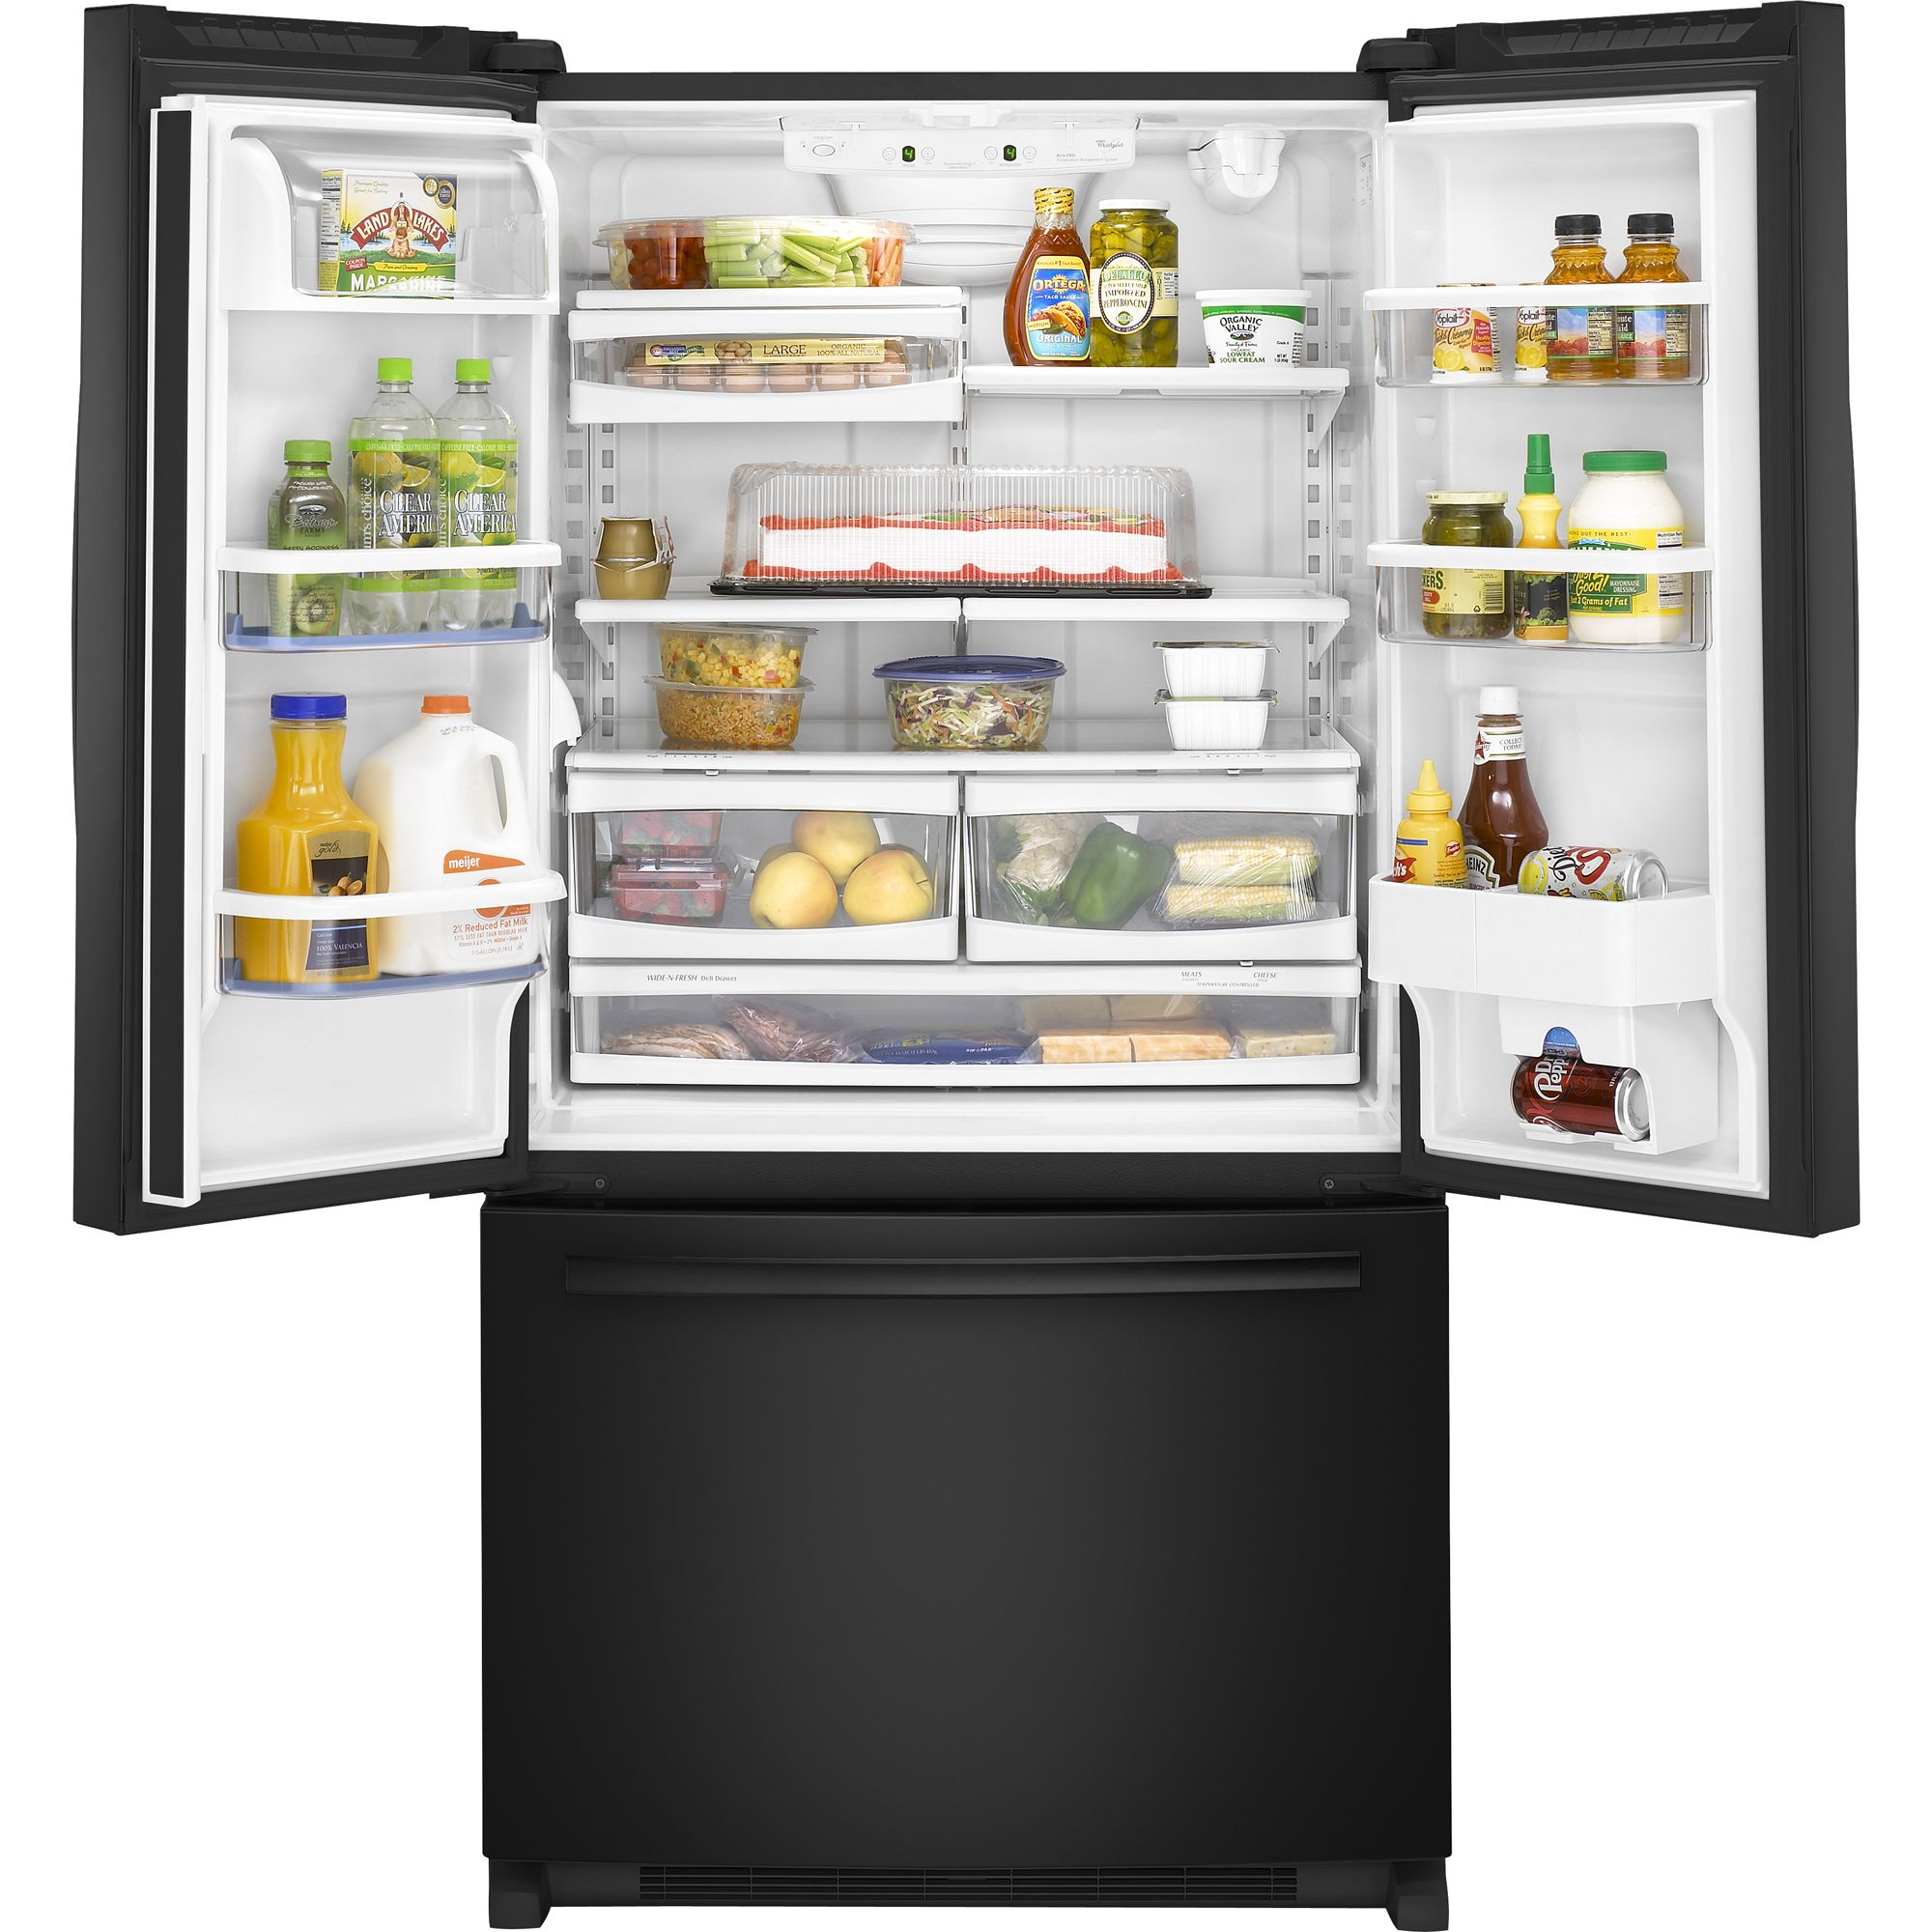 Whirlpool 24.8 cu. ft. French Door Bottom Freezer Refrigerator with Contour Doors